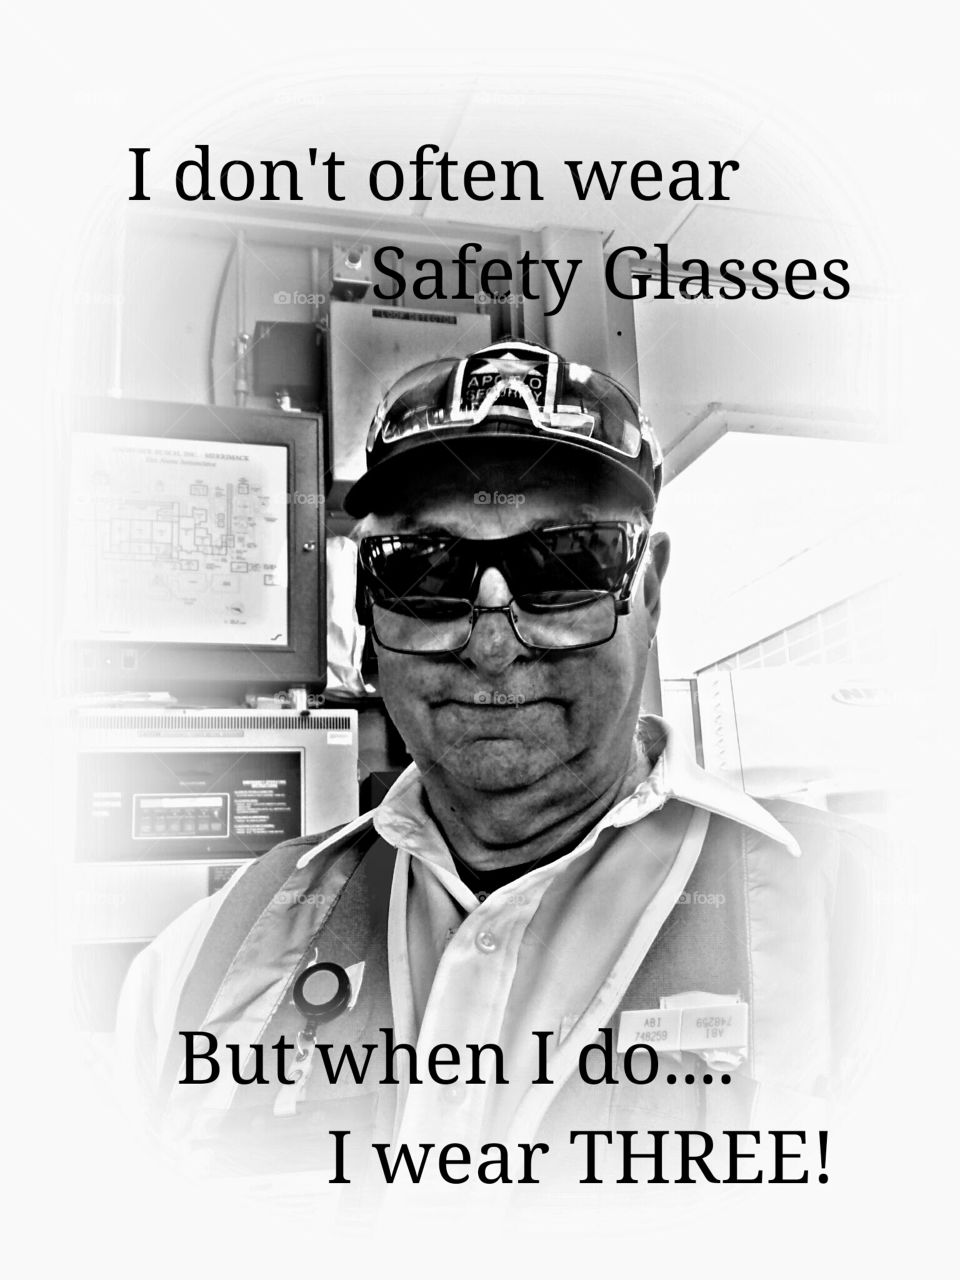 Safety Man. I don't always wear safety glasses... but when I do... I wear 3!!!! Safety humor at the workplace.